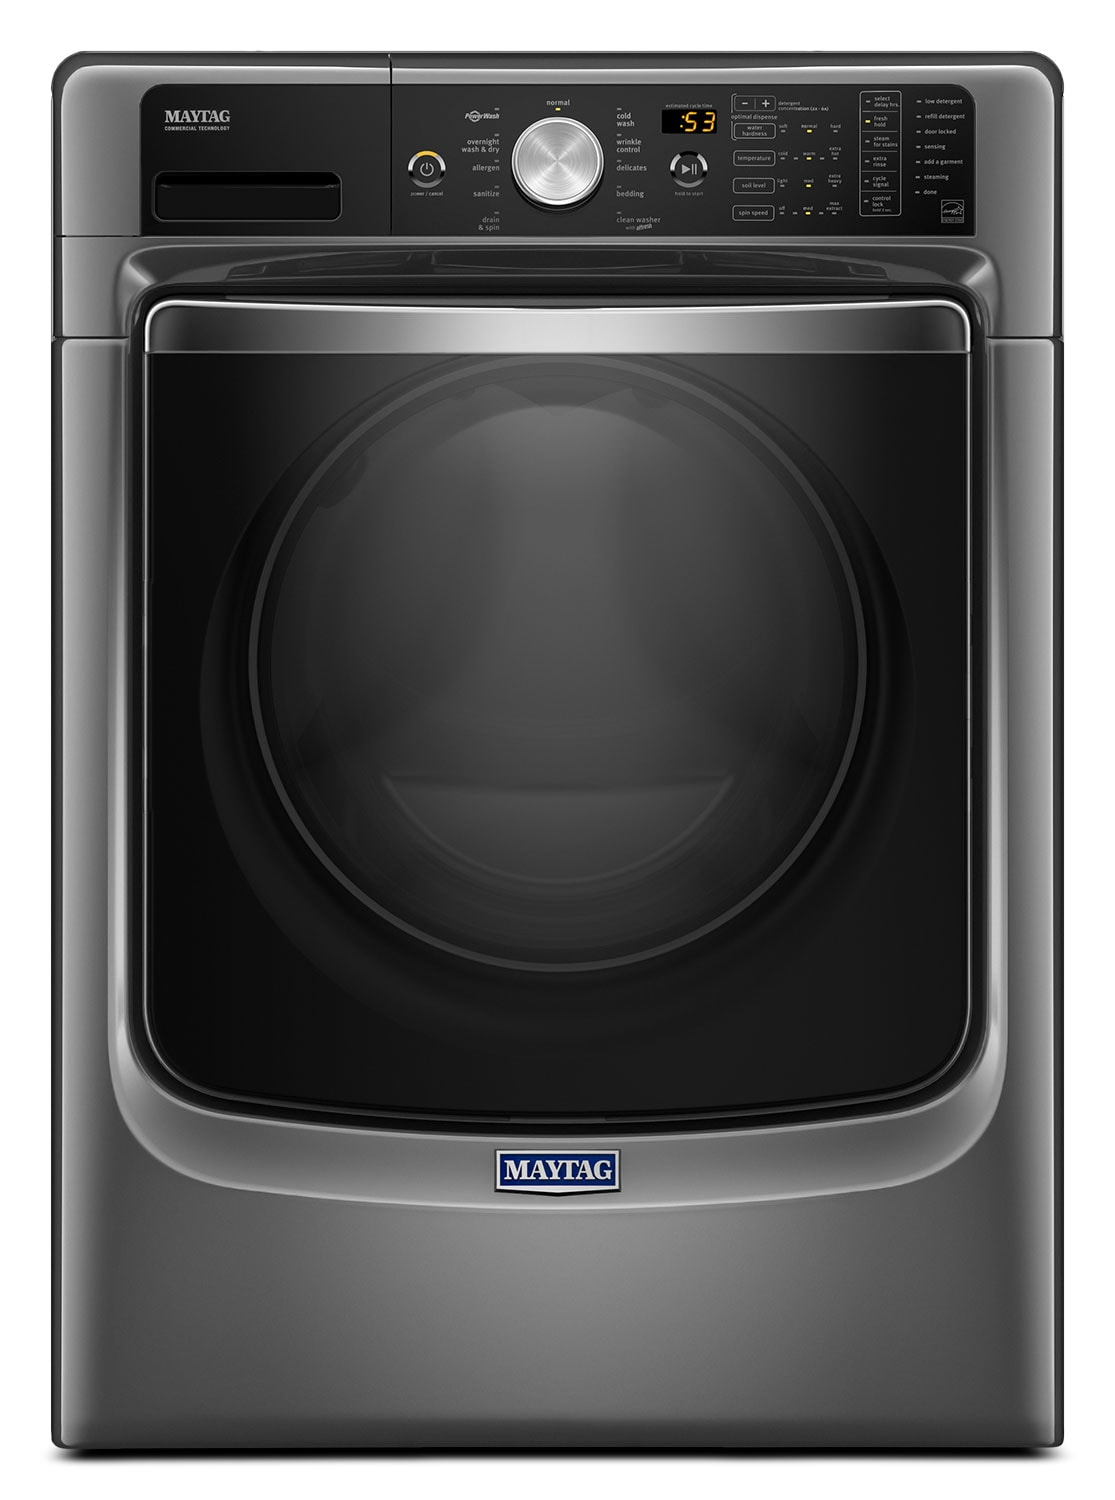 Maytag Metallic Slate Front-Load Washer w/ PowerWash® System - MHW8200FC